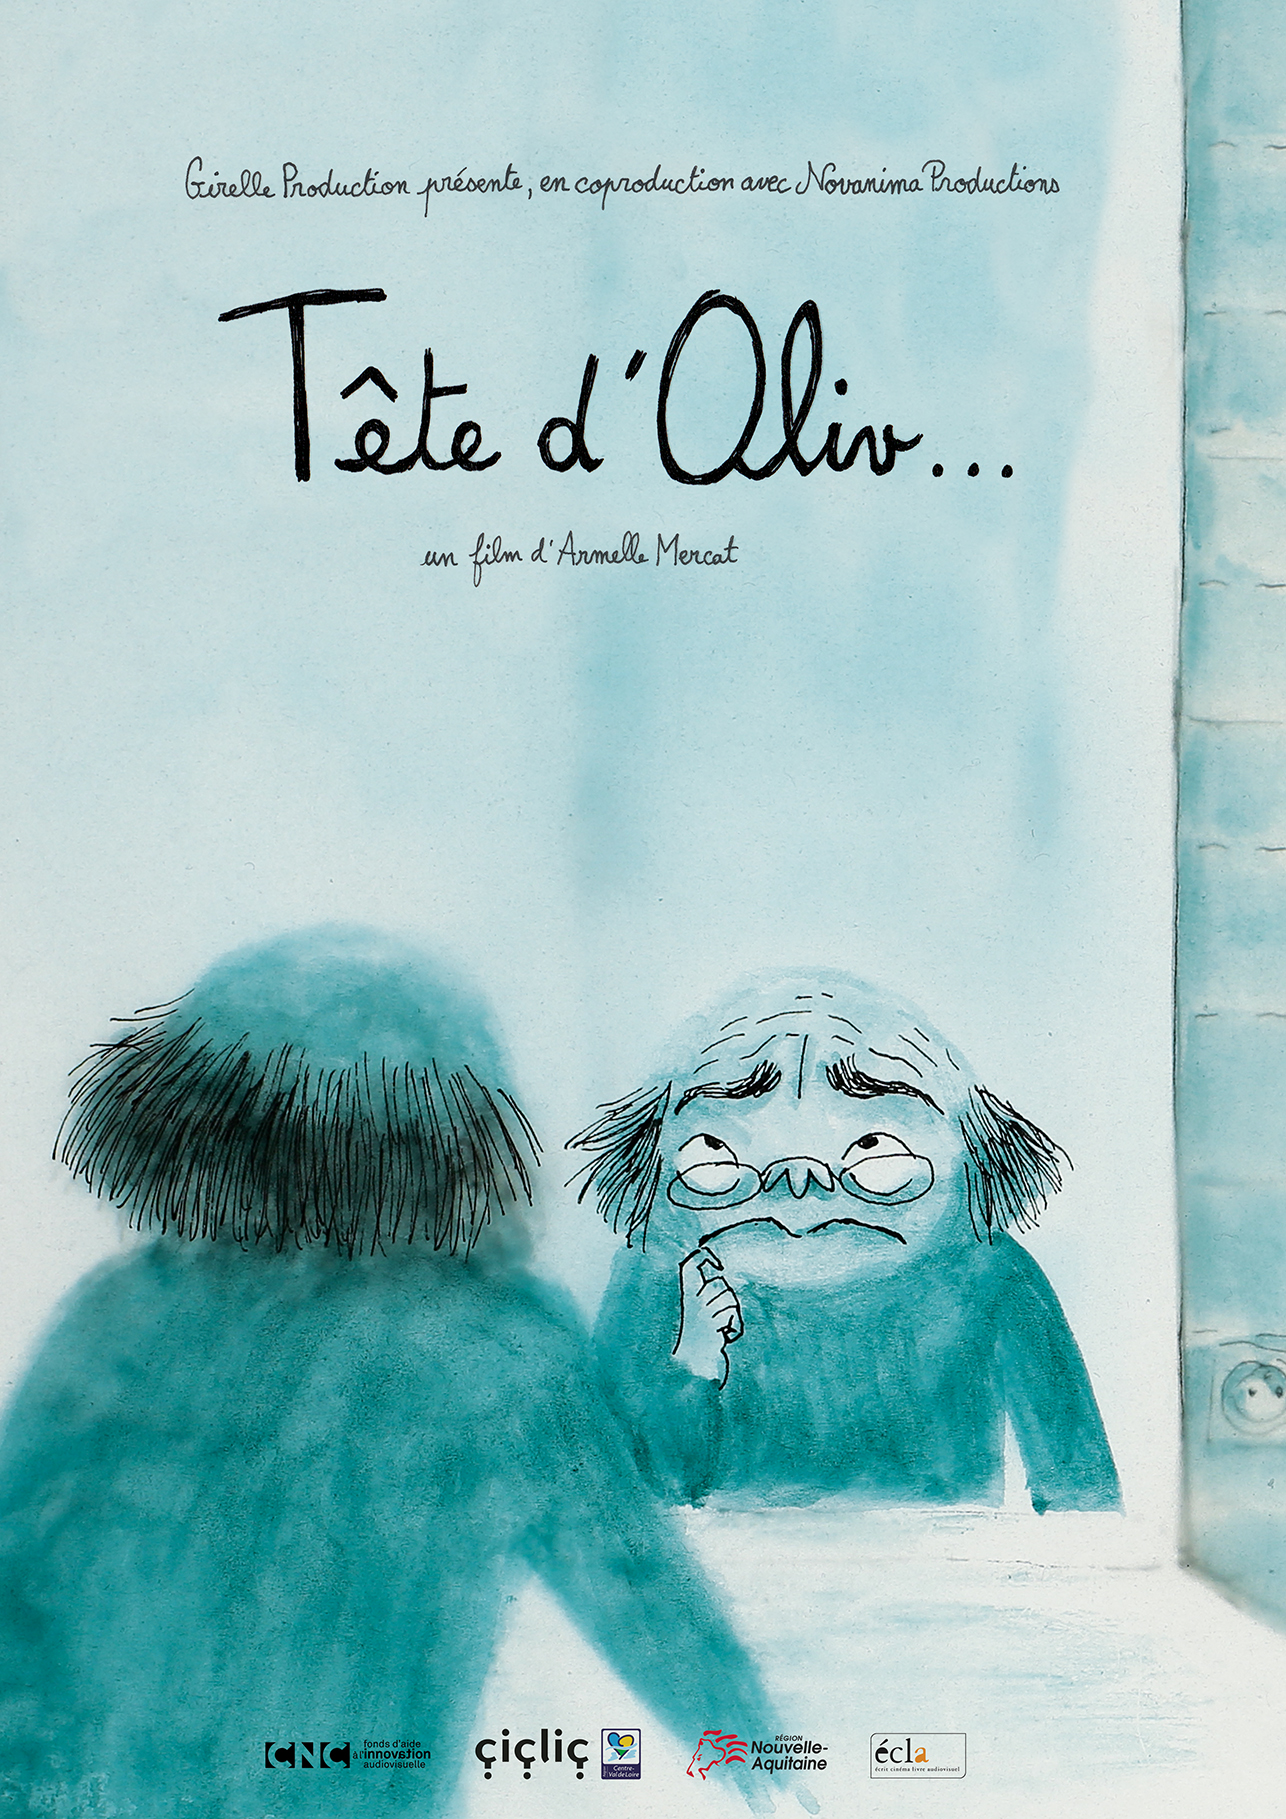 affiche-teted'oliv 2